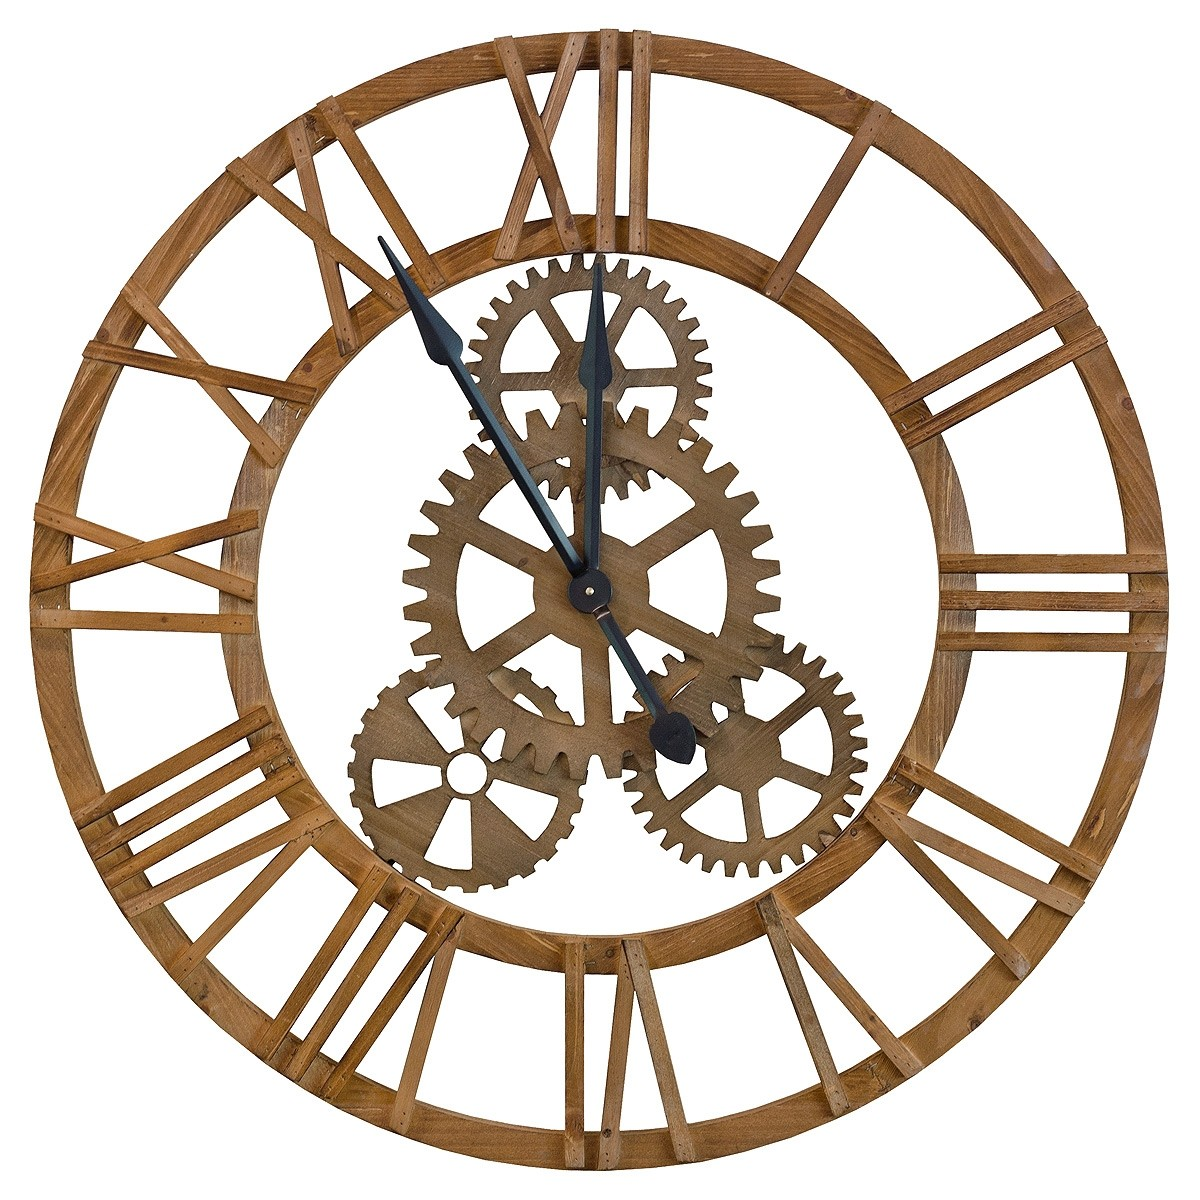 1200x1200 Why Is The Roman Numeral Wrong On Clocks Clock Drawing Wall